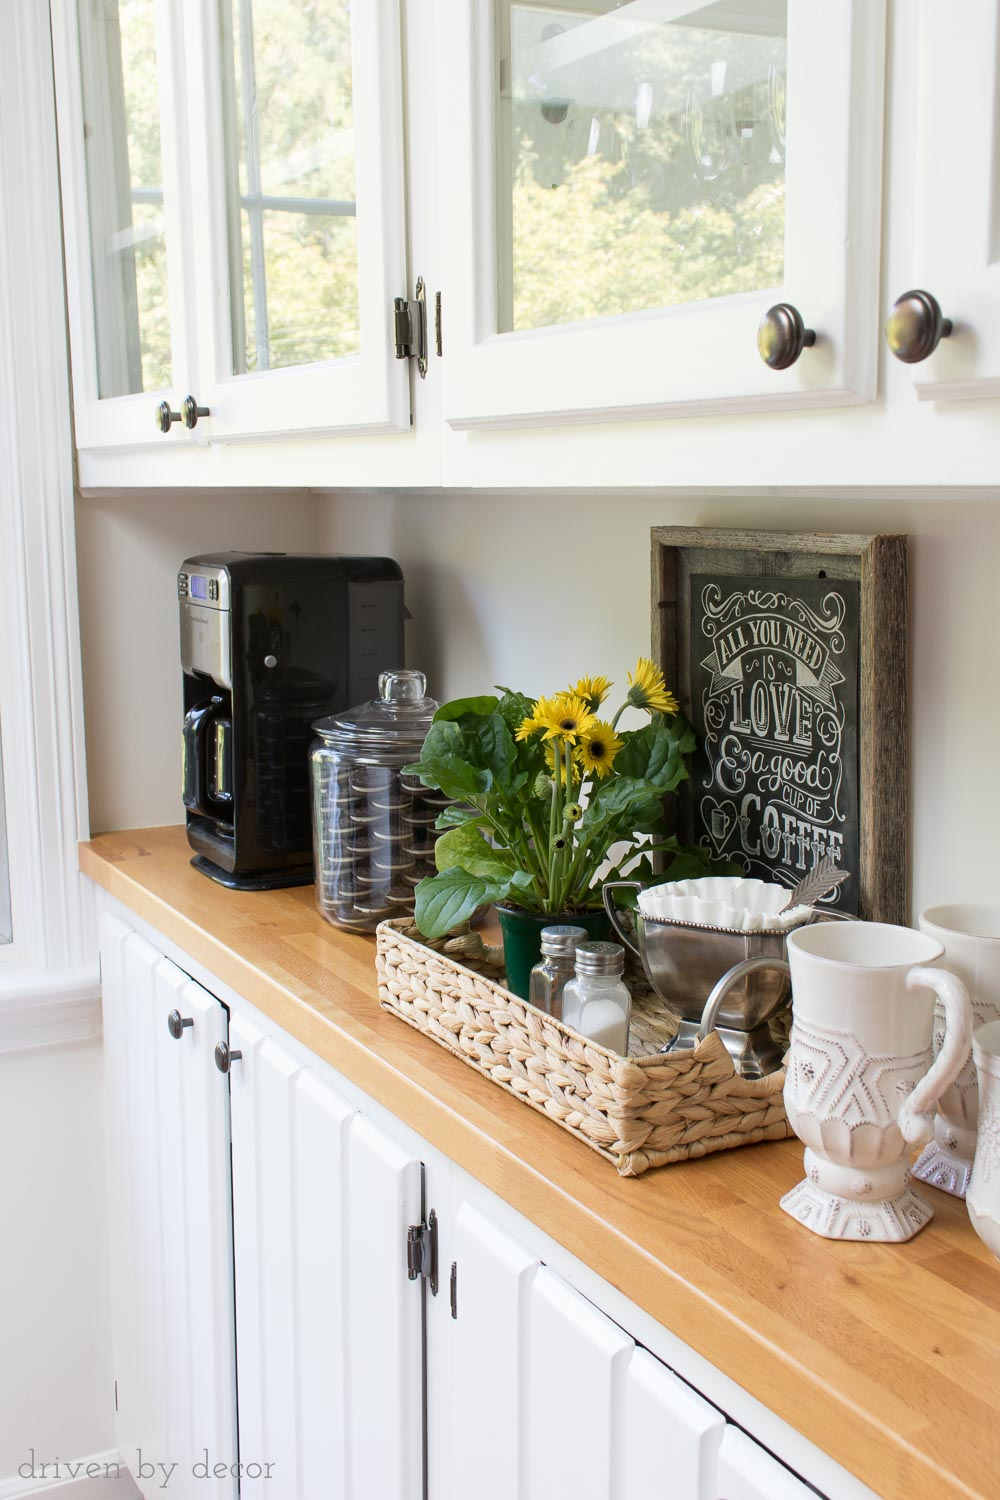 Butcher block countertops sealed with waterlox to create a cute kitchen coffee station